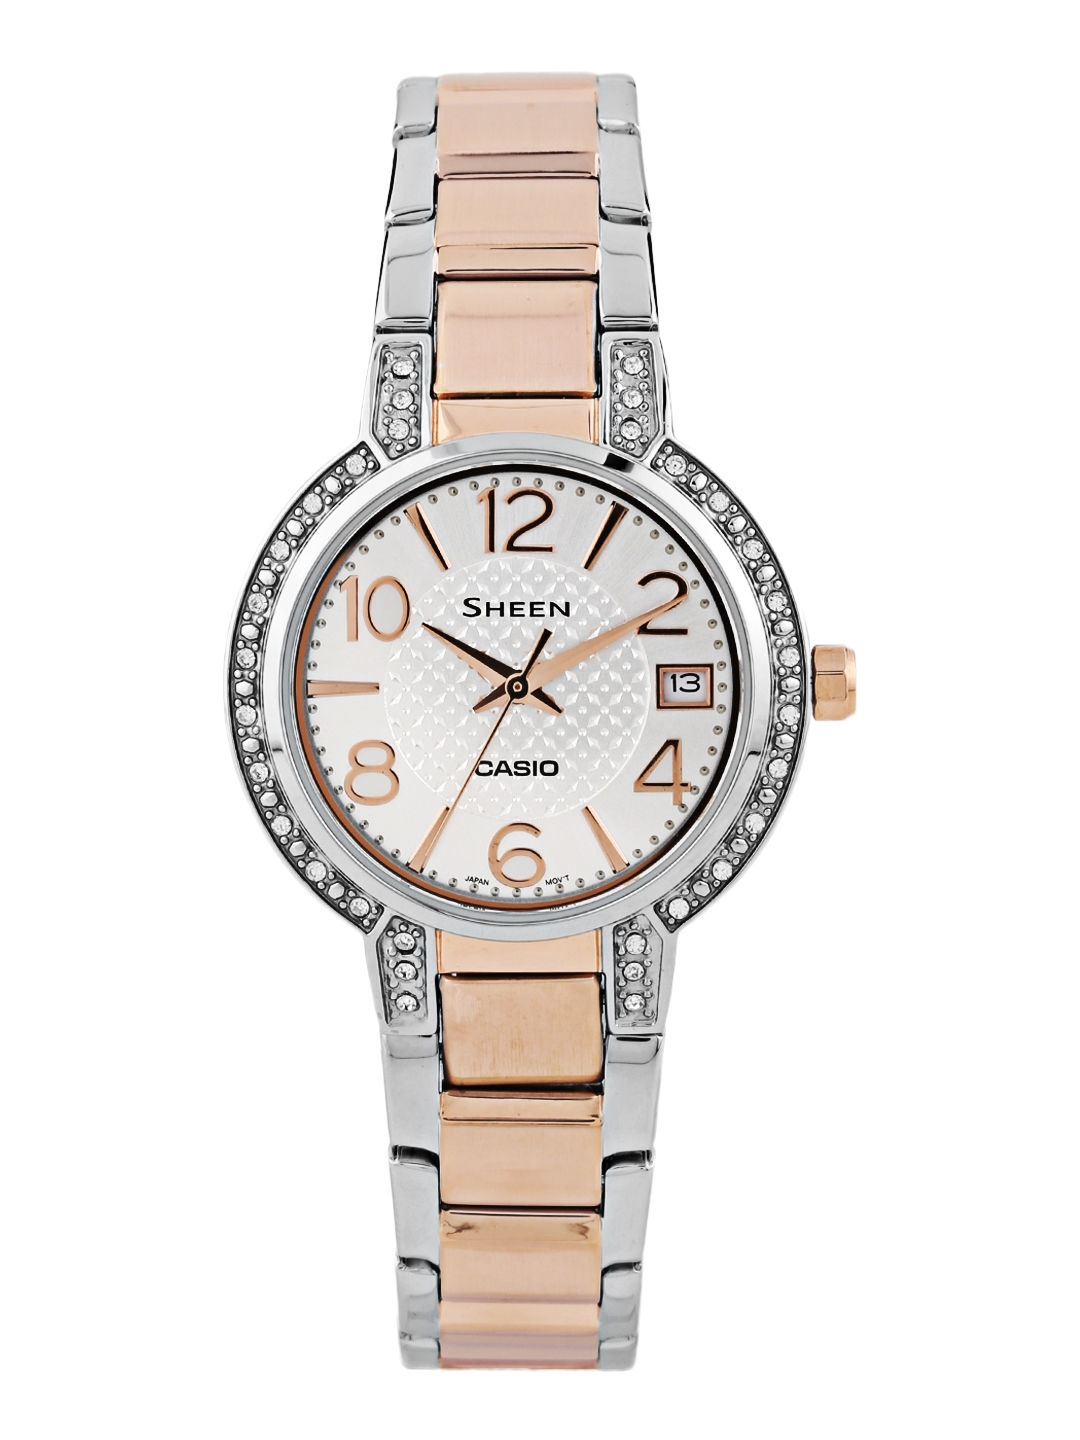 competitive price d6284 7f793 CASIO Sheen Women Silver-Pink Gold Analogue Watch SHE-4804SG-7AUDR SX129